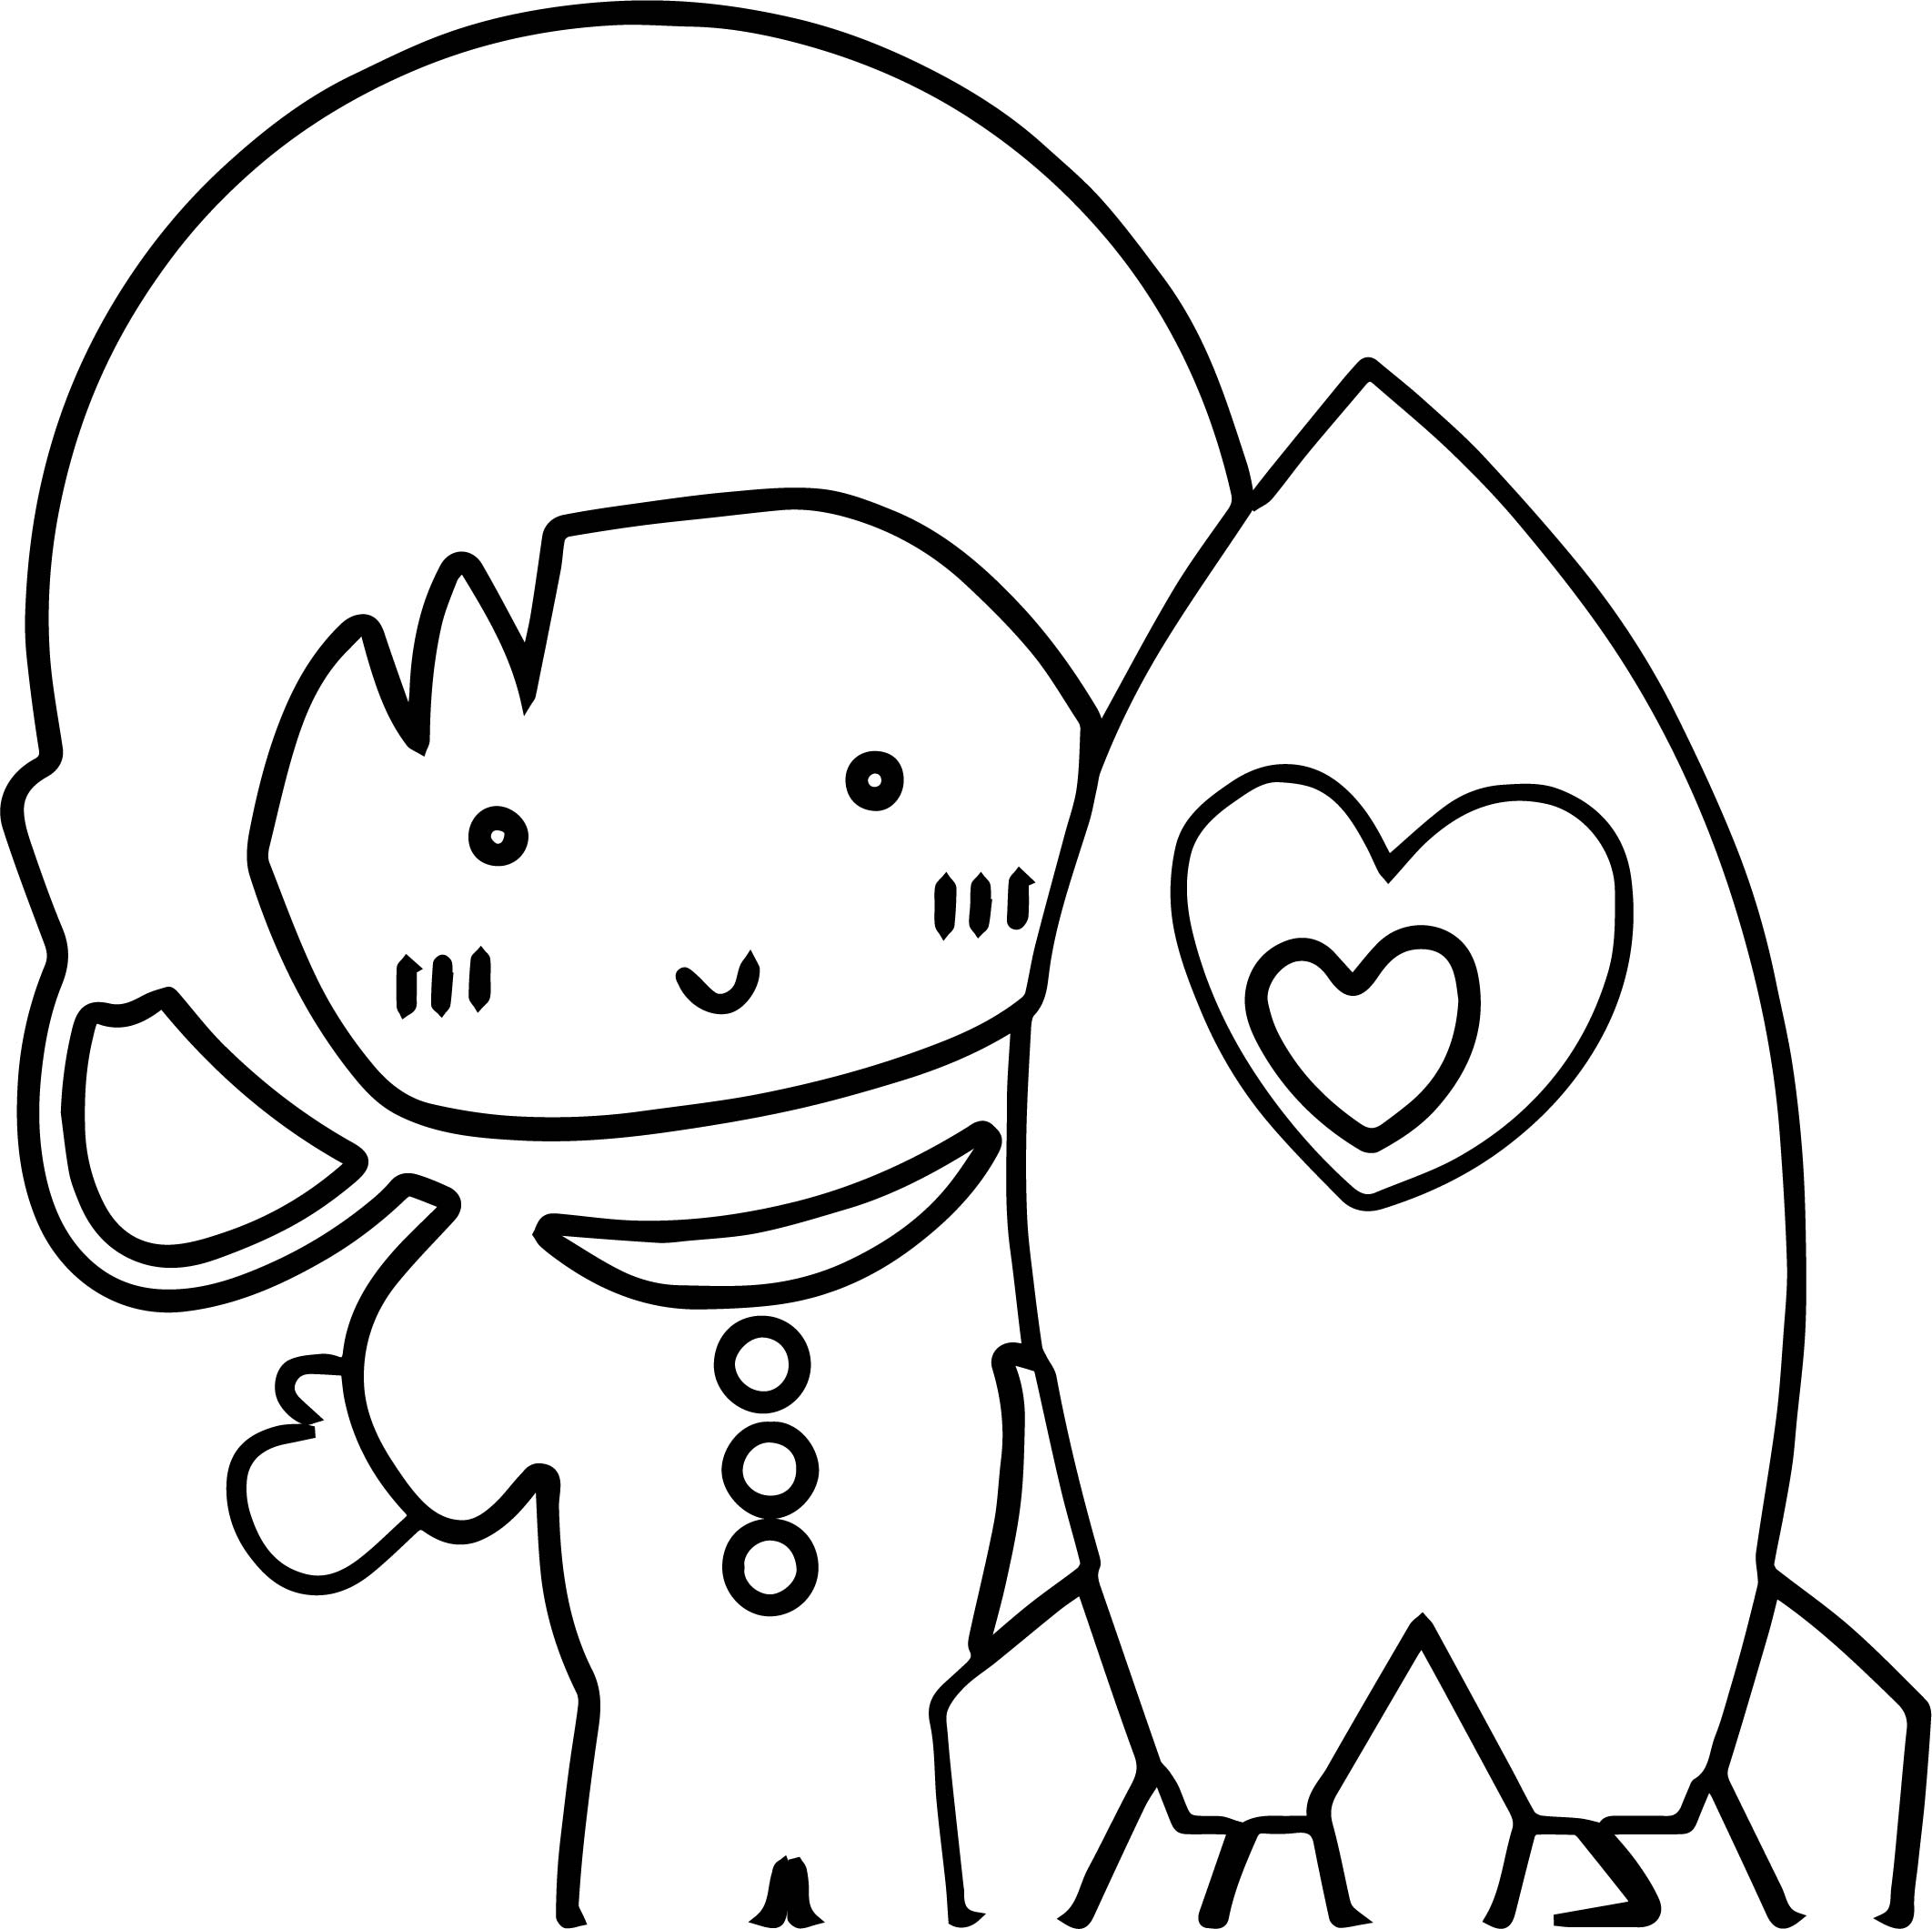 Astronaut Cute Boy Coloring Page